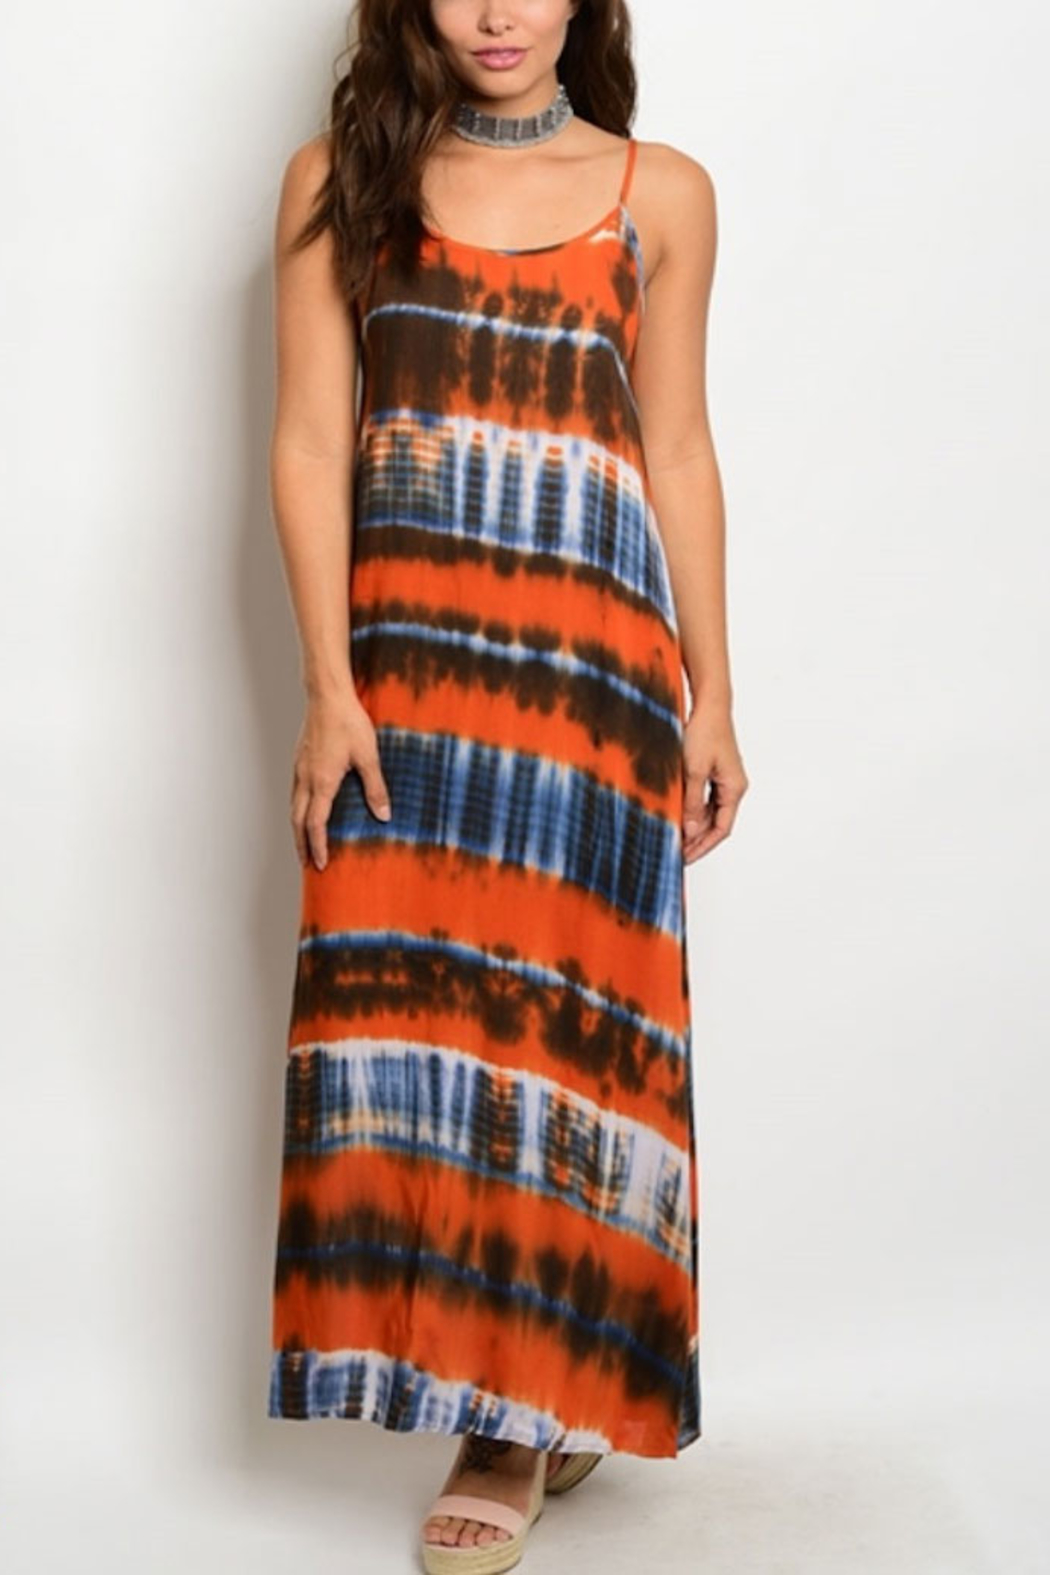 Tracie's Orange Tye-Dye Maxi Dress - Main Image